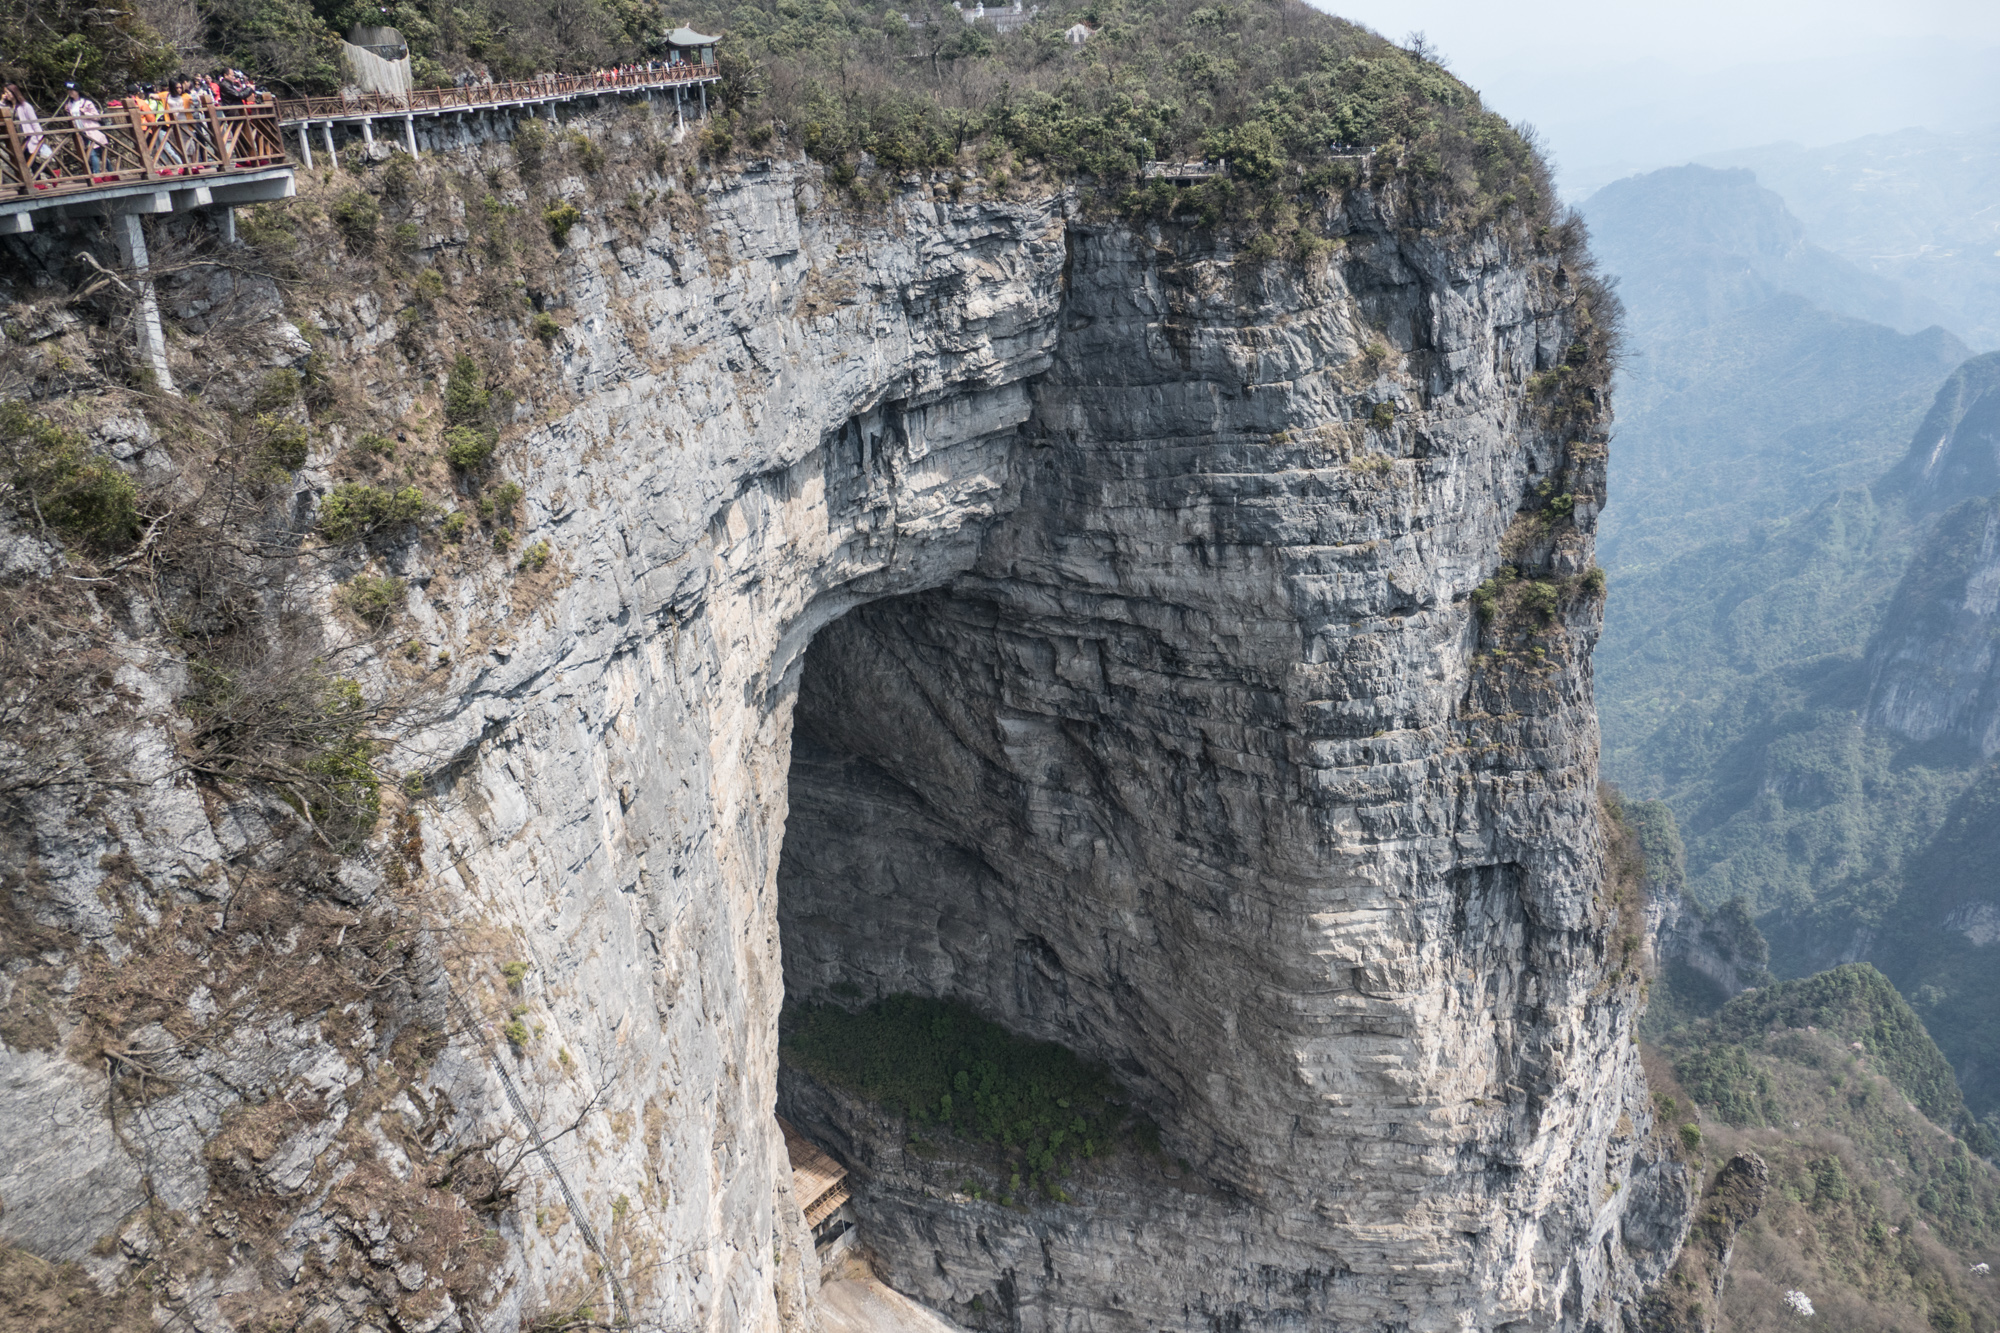 Tianmen means Heaven's gate and the mountain is named after this natural opening, large enough to fly a squadron of planes through it. Note the cliffwalk above the gate and the ladder to the left of the opening